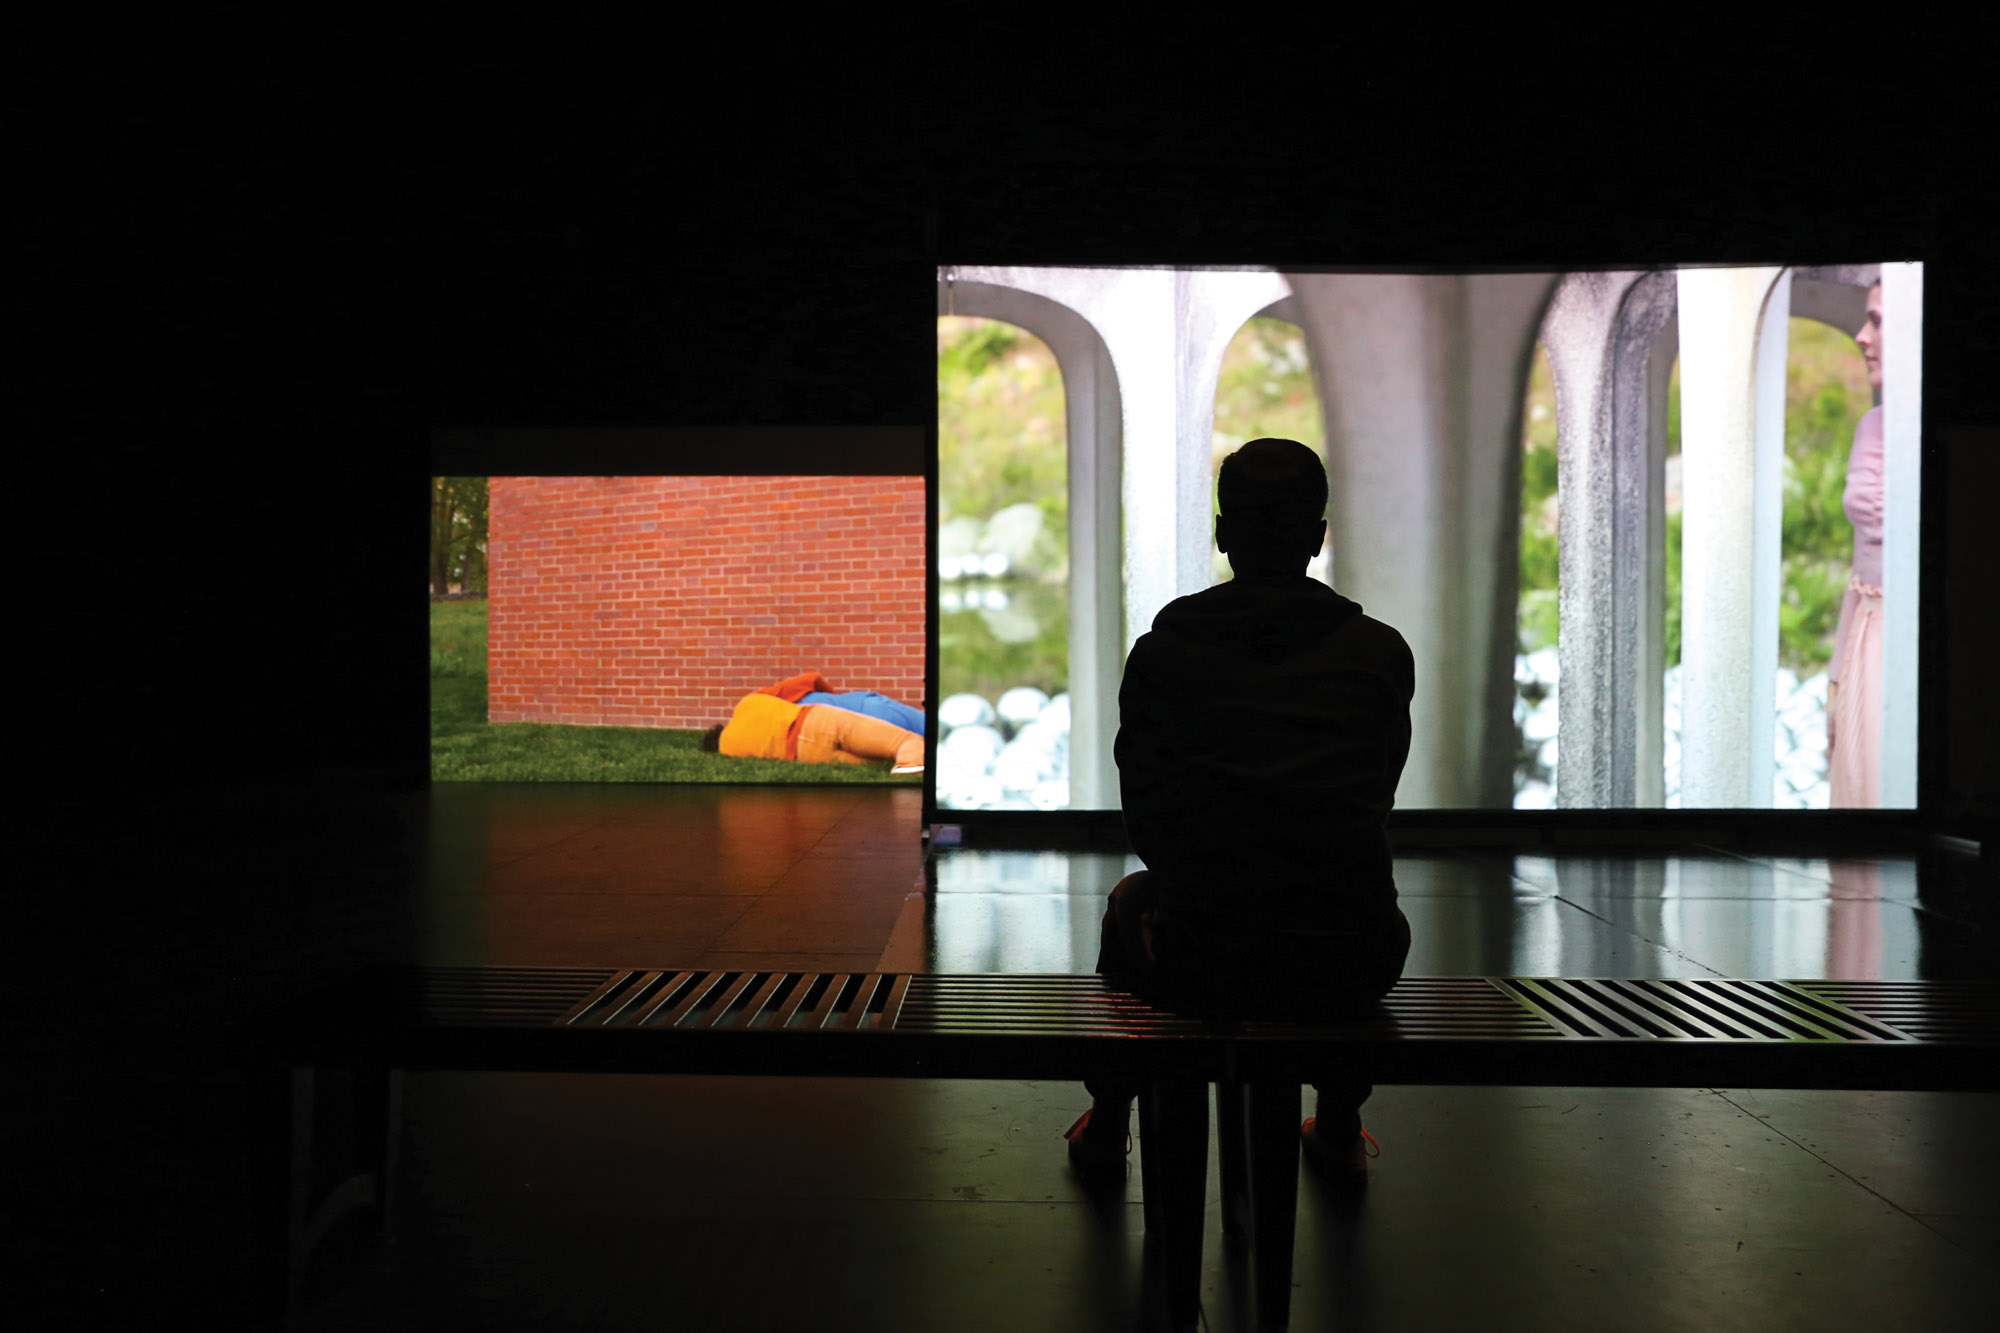 a man in the forground viewing a large video screen.